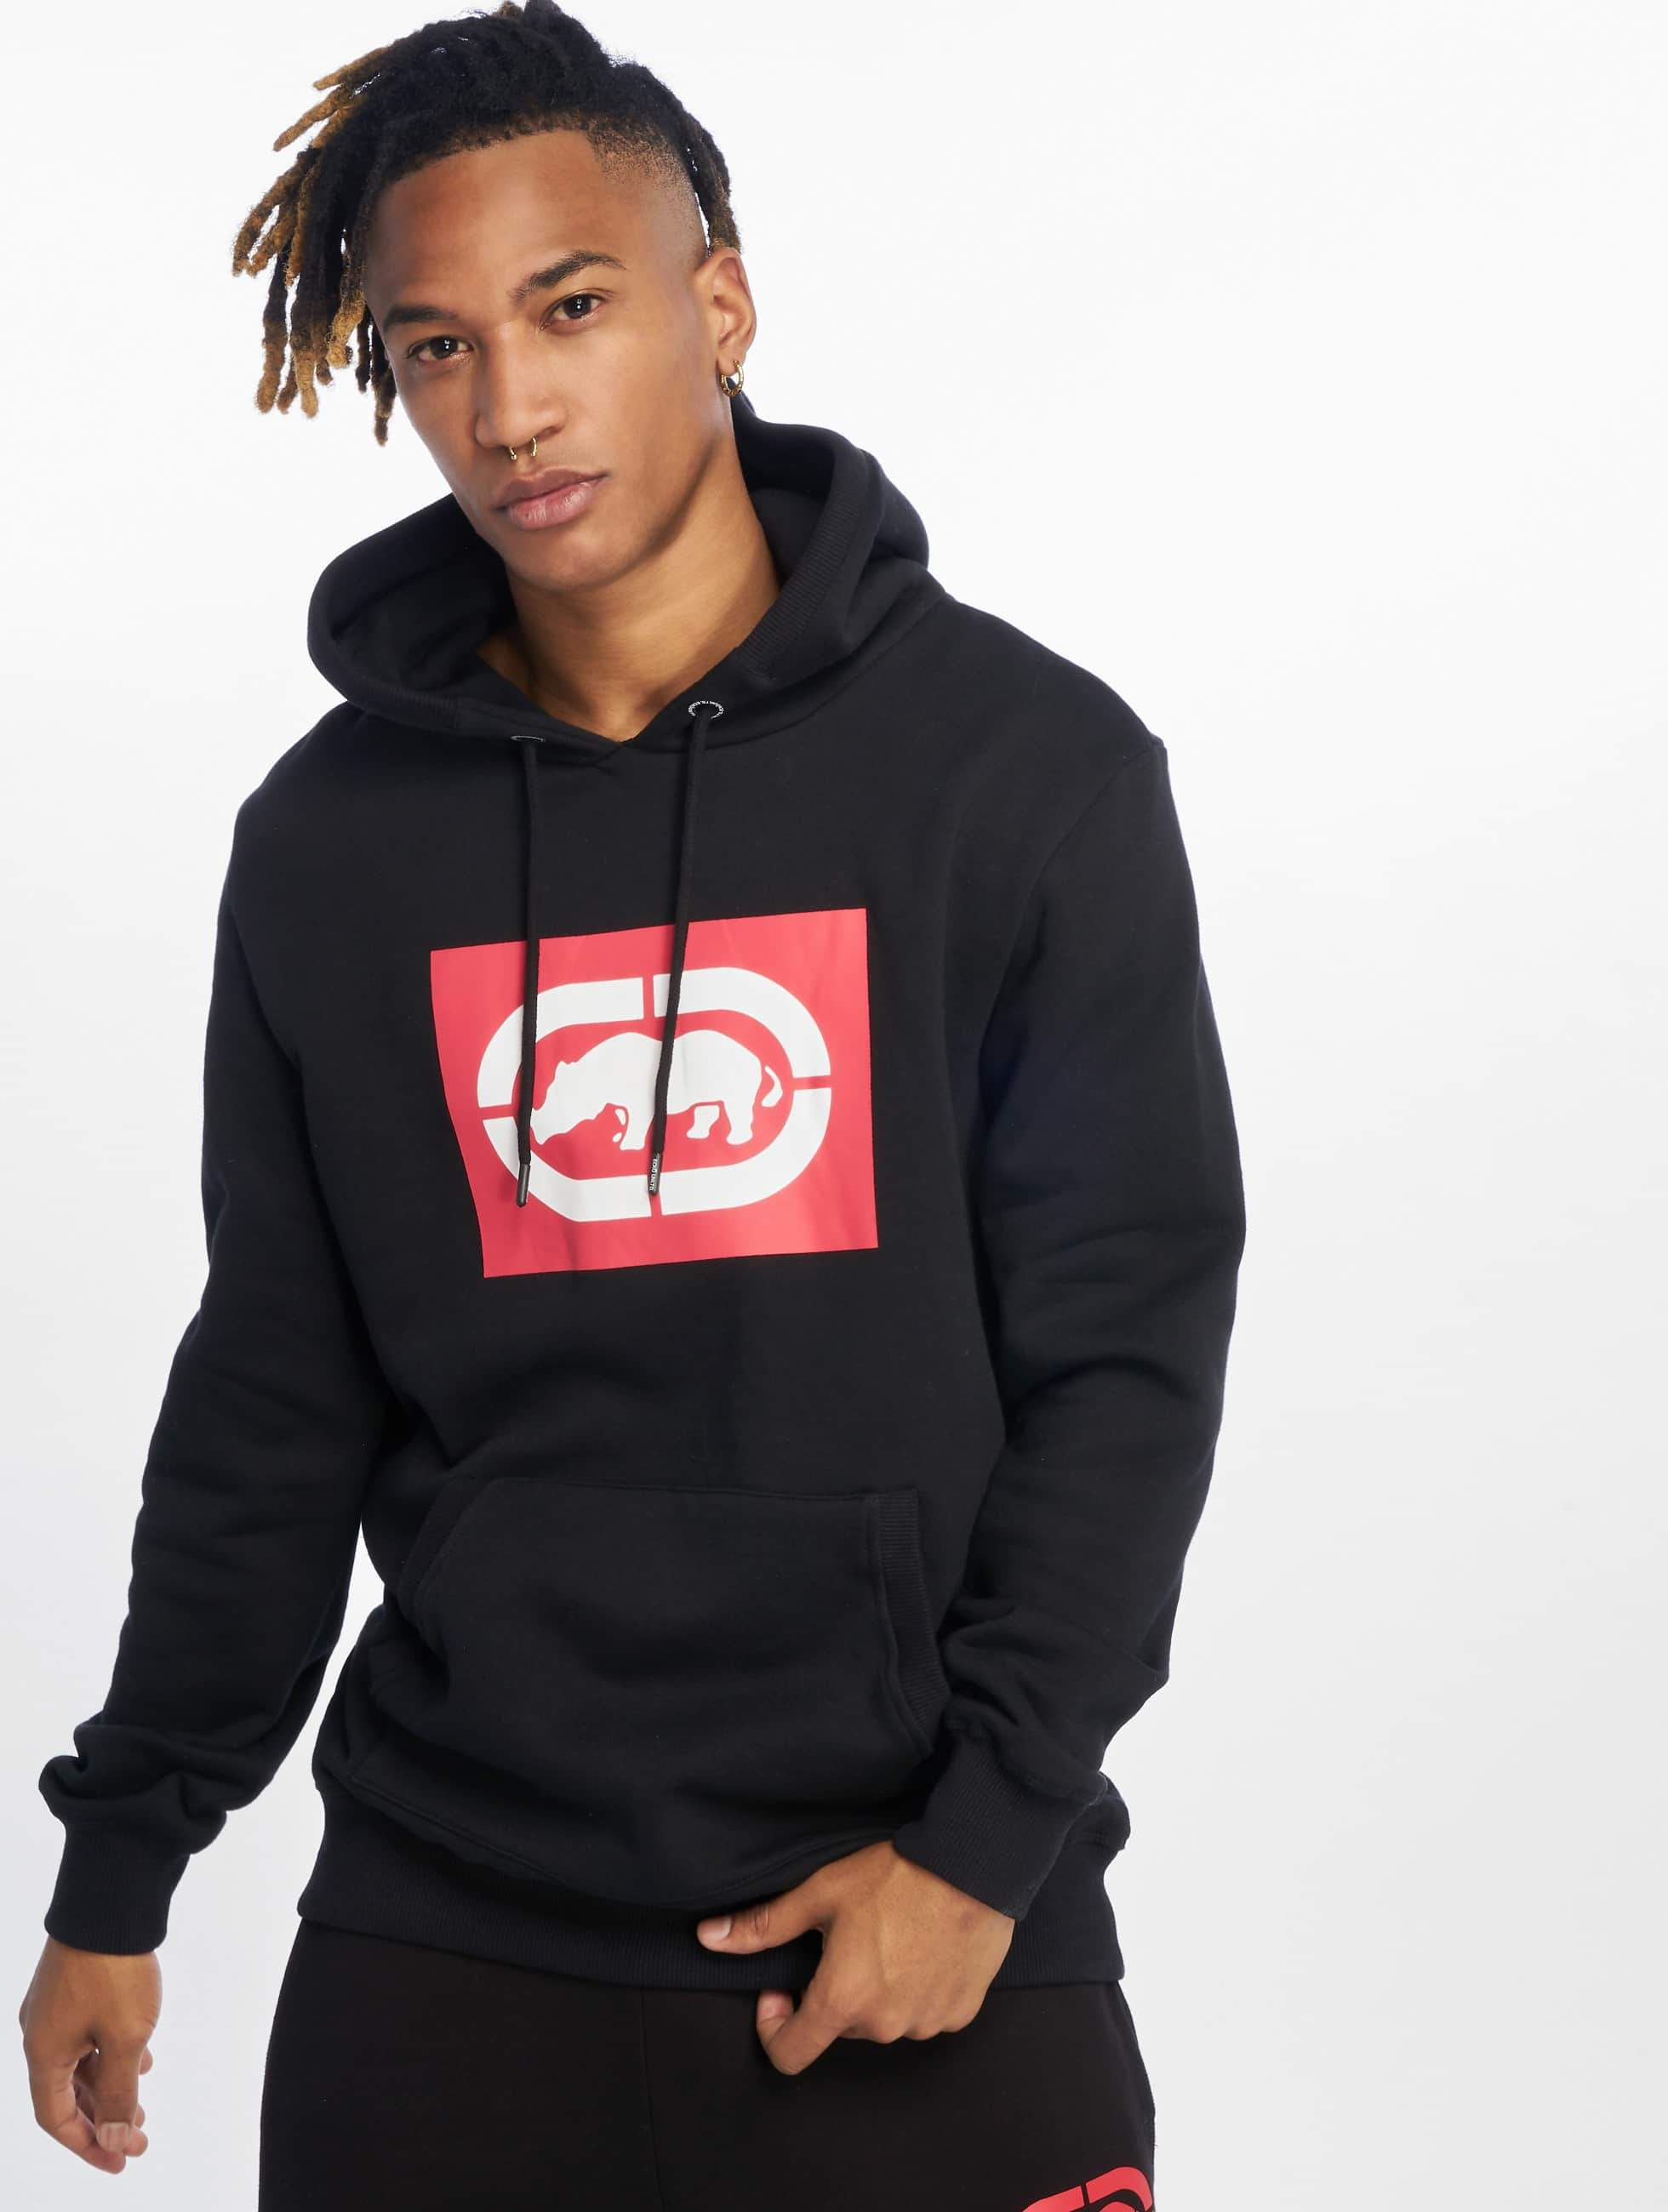 Ecko Unltd. / Hoodie Base in black 6XL